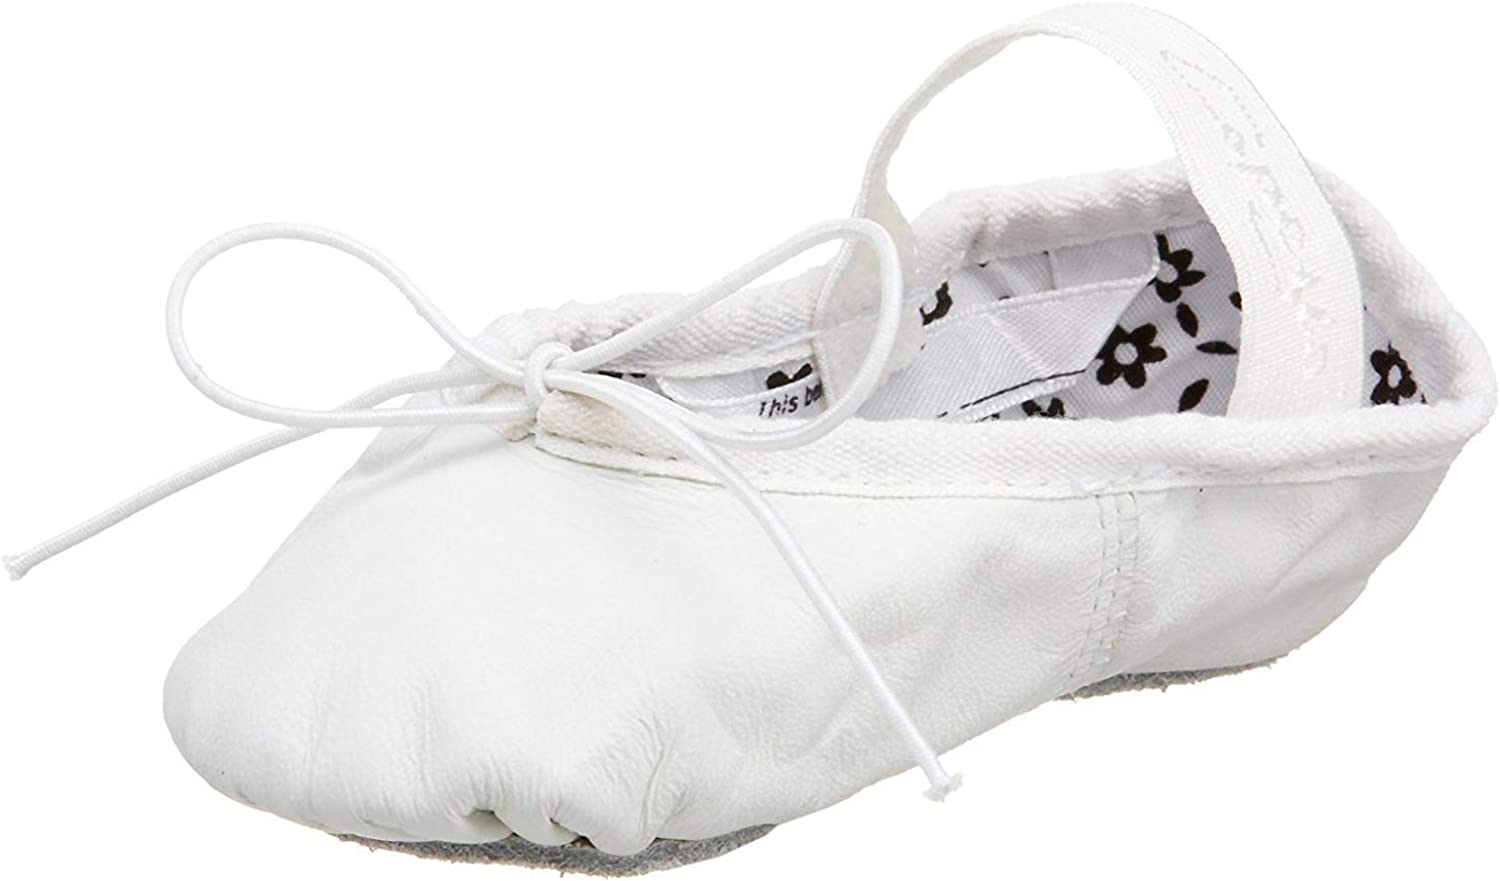 B000G0GDZU Capezio Daisy 205 Ballet Shoe (Toddler/Little Kid) 619srujShPL